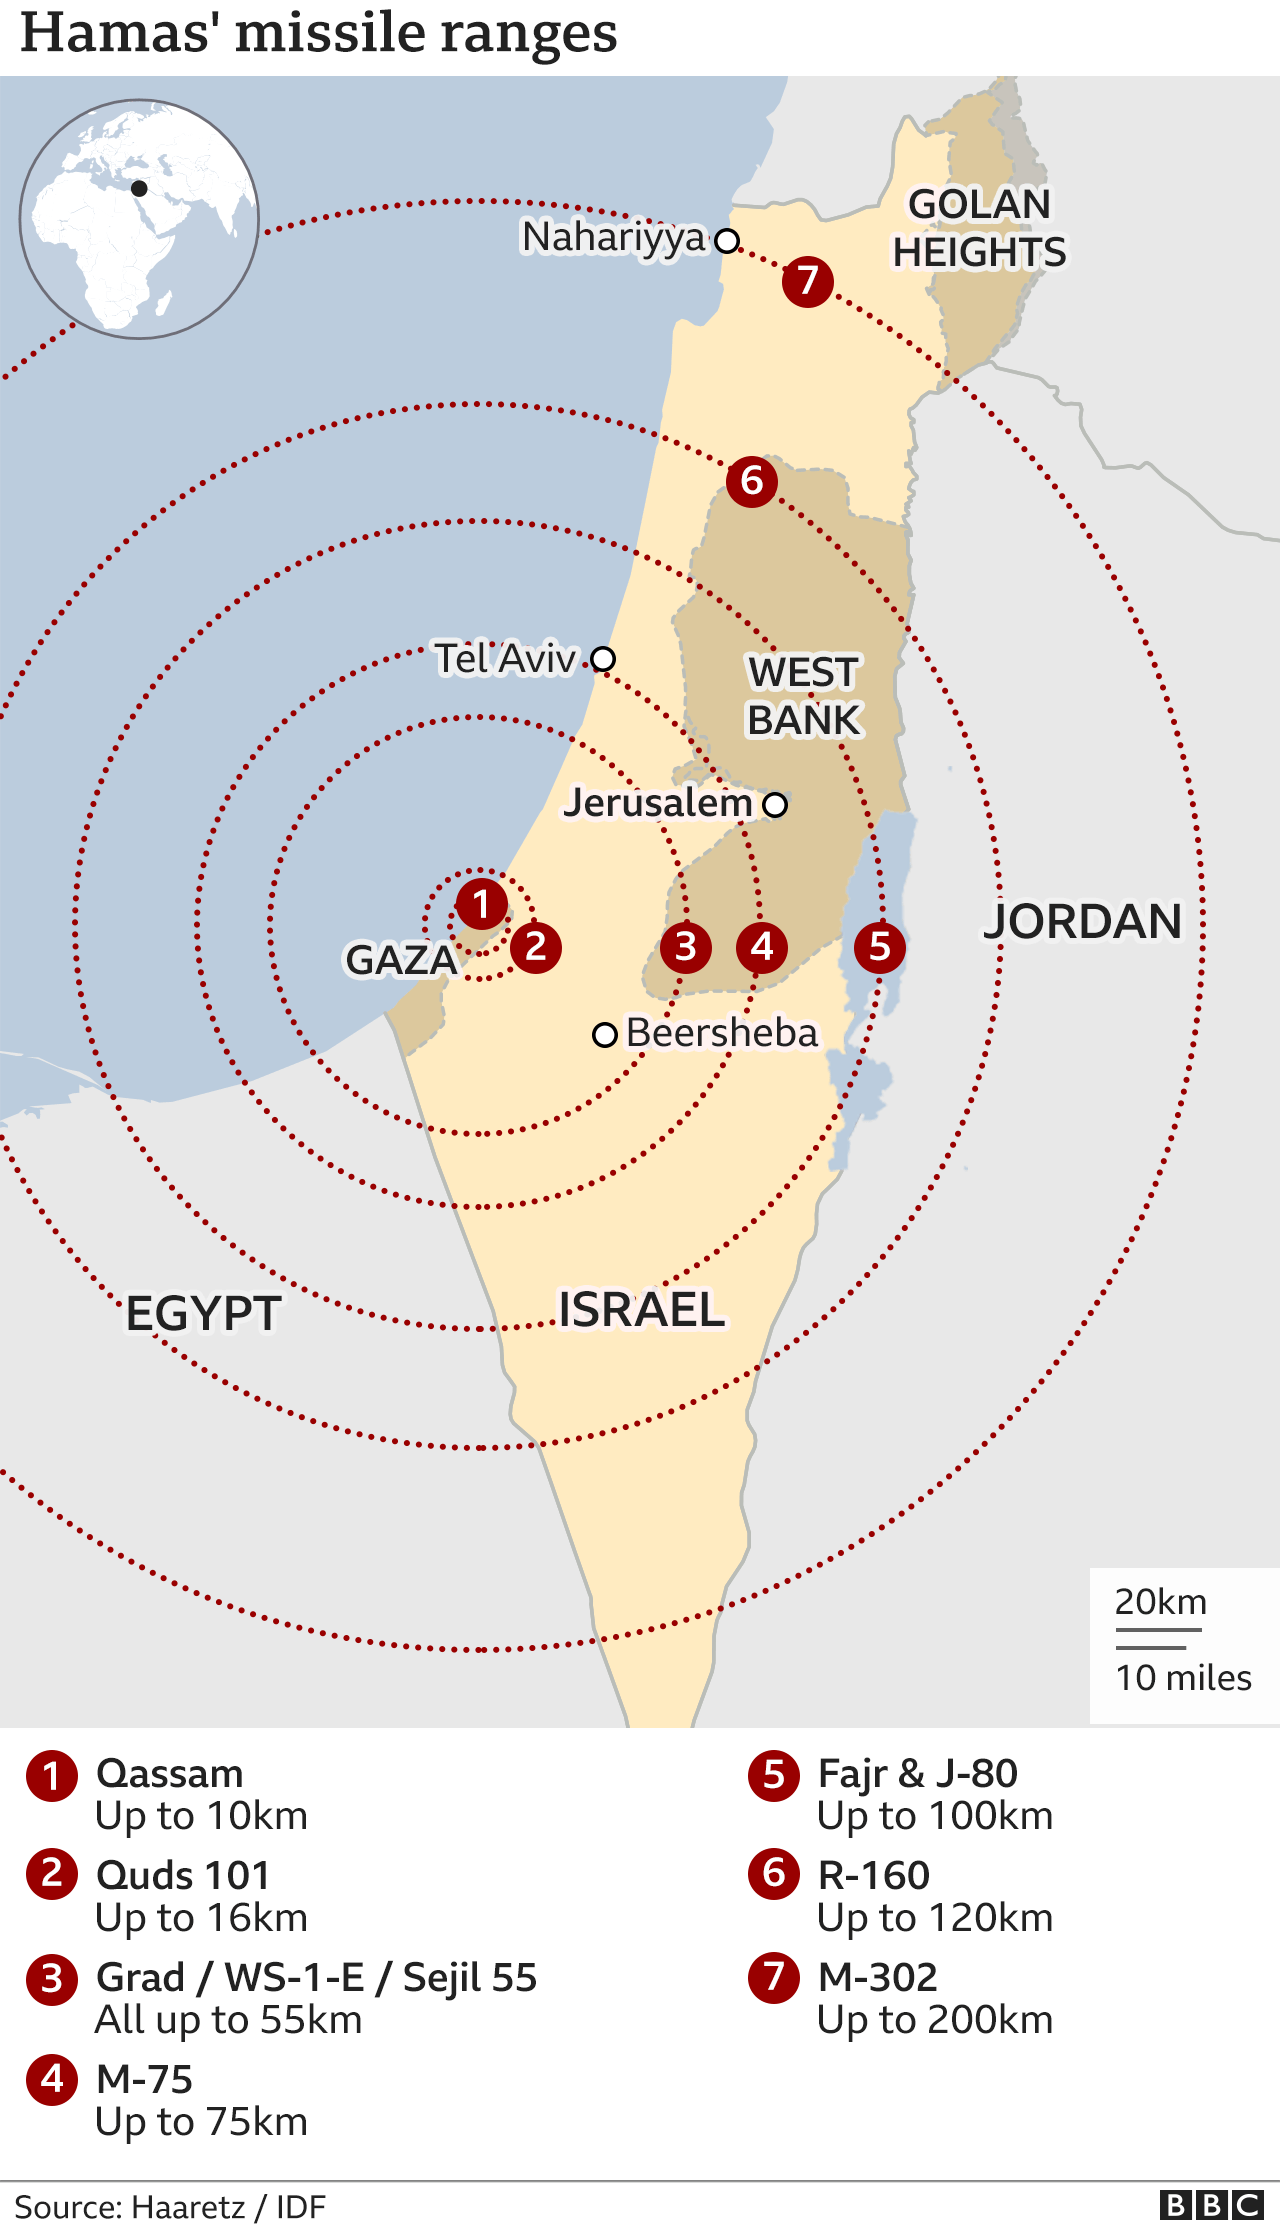 Map showing ranges of Hamas' missiles